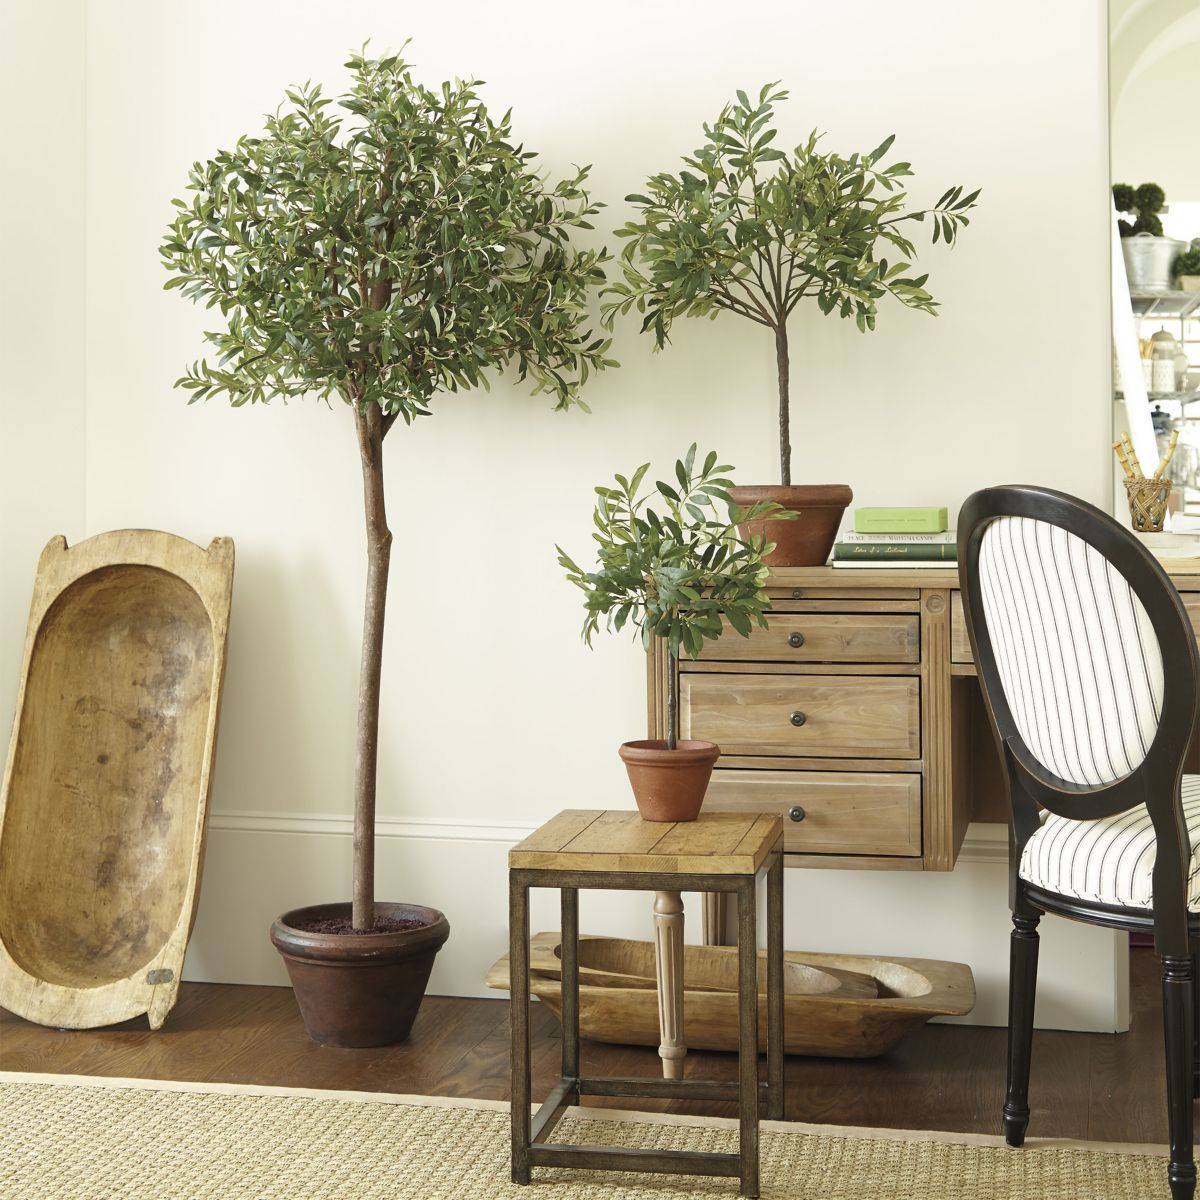 Potted Olive Tree in a larger pot....